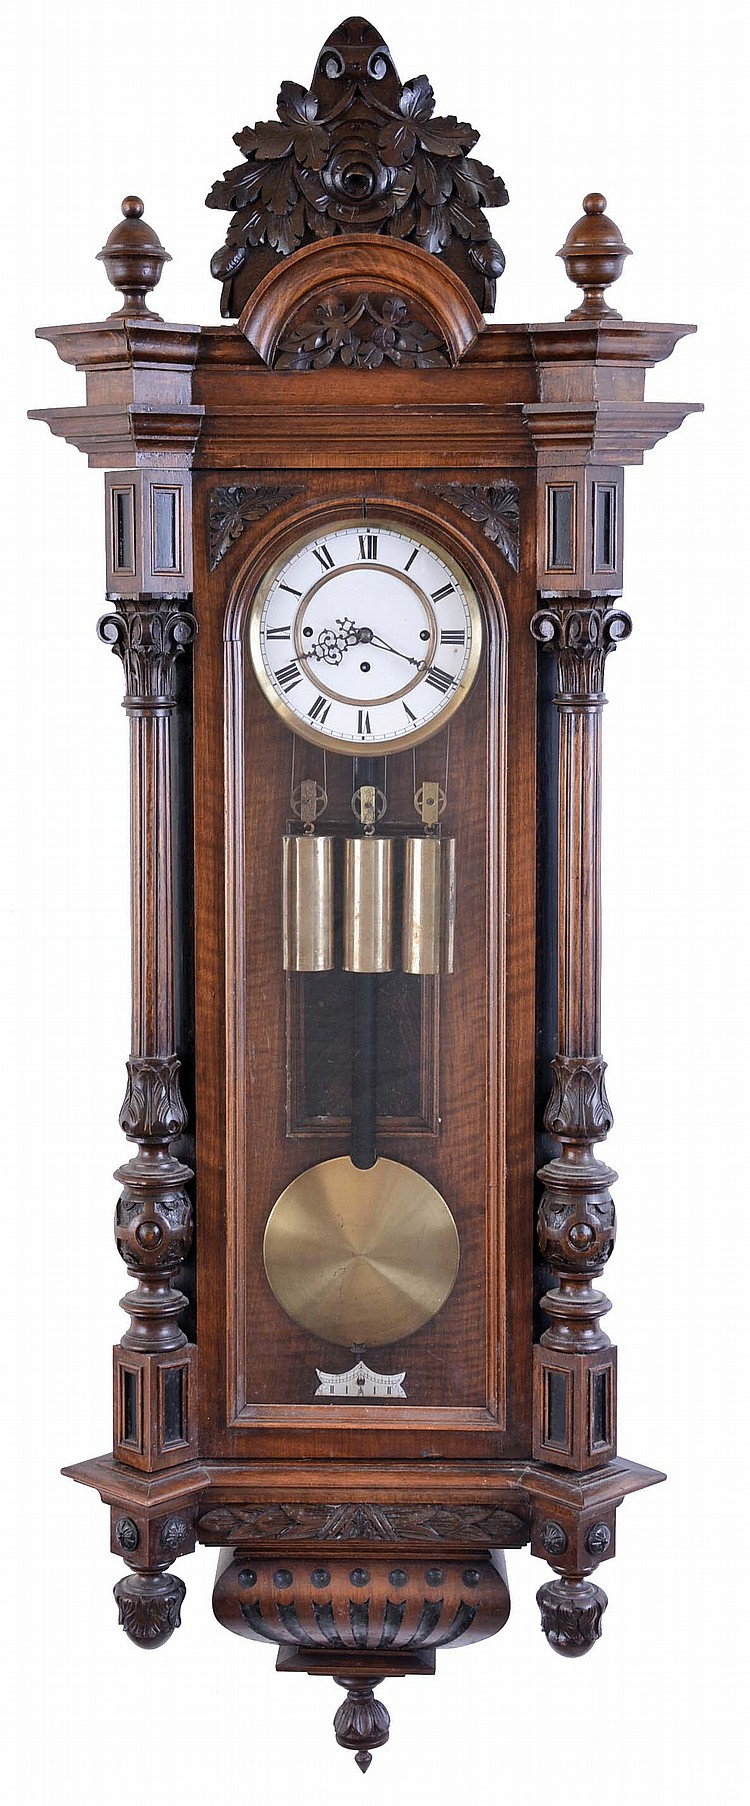 Austria, a large grand sonnerie hanging regulator, walnut case with carved and turned ornament, large base and cornice moldings, and foliate carved crest, Roman numeral two piece white enamel dial, 8 day, weight driven, three train quarter striking